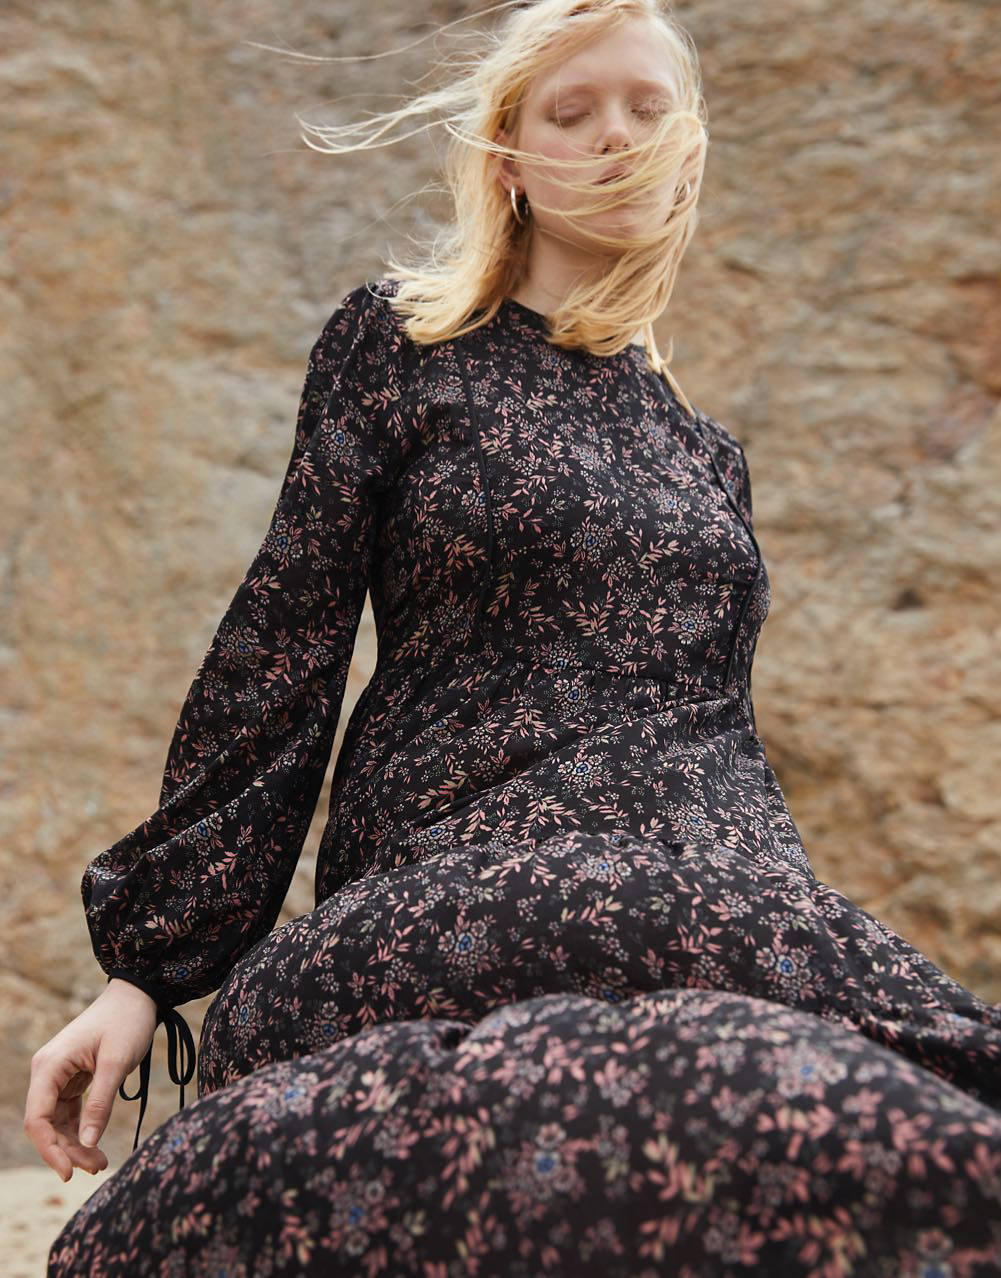 Madewell x Christy Dawn Exclusive Collaboration - black dress